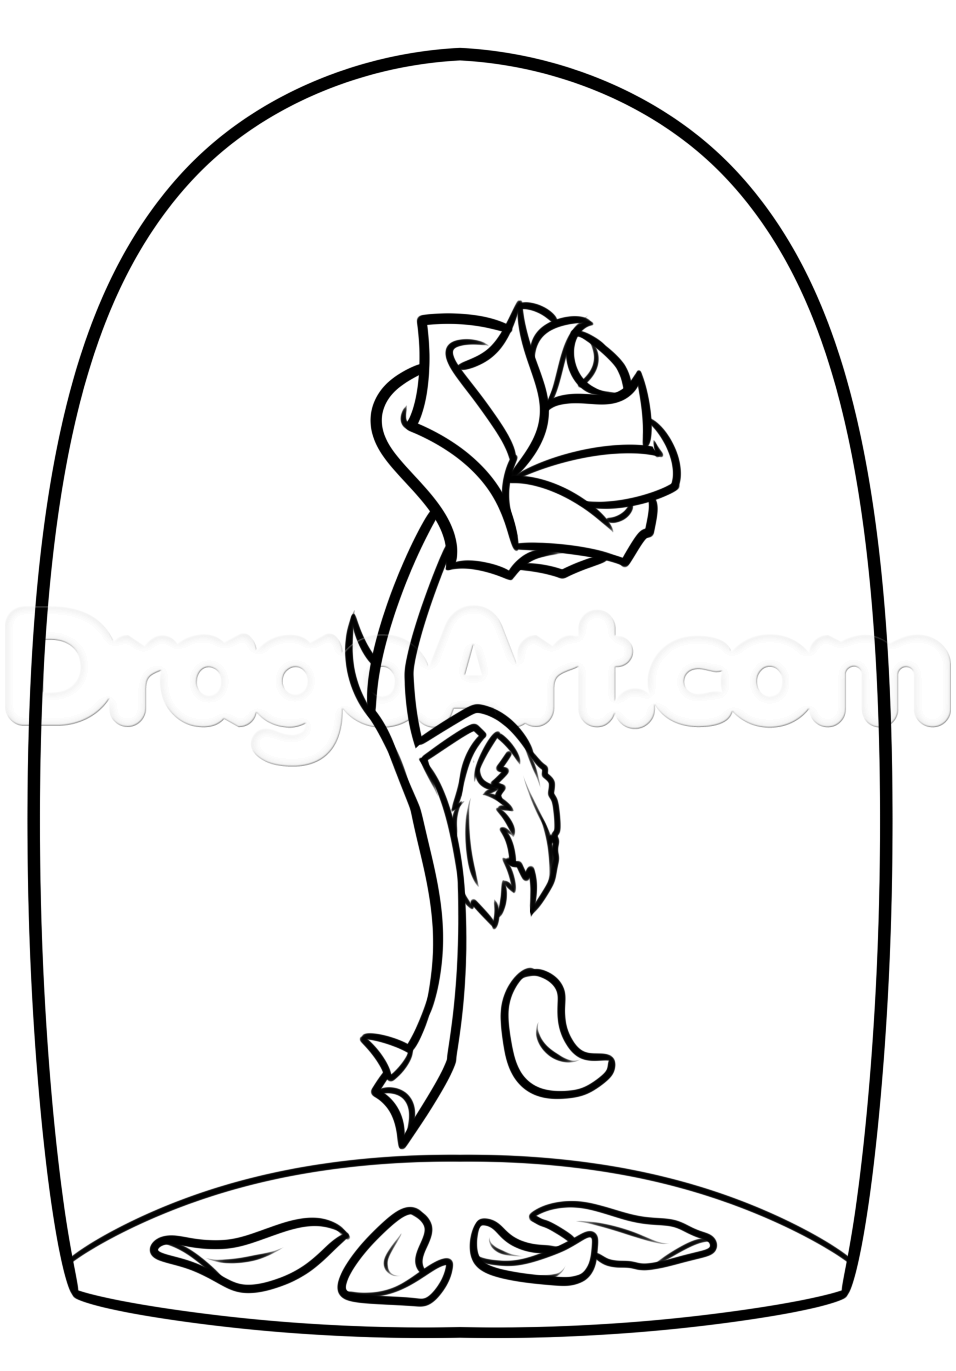 beauty and the beast rose drawing step 7.